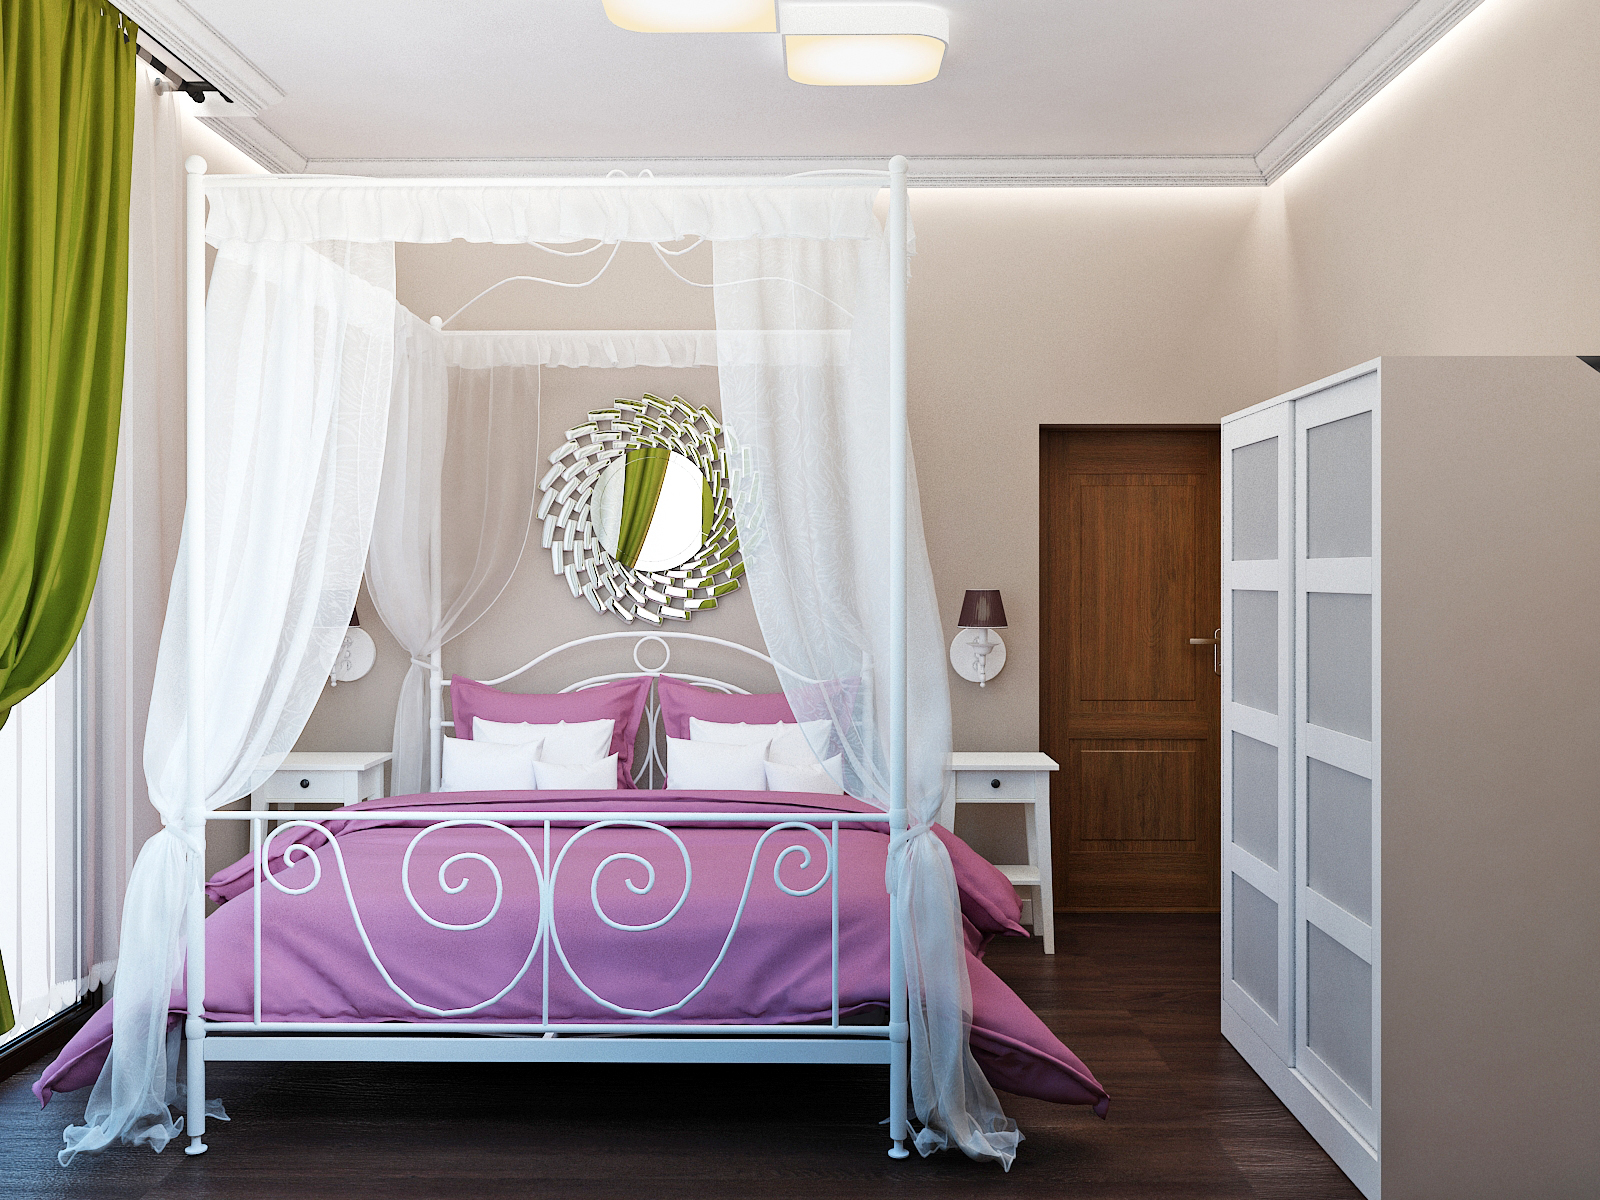 Romantic bedroom baldachin